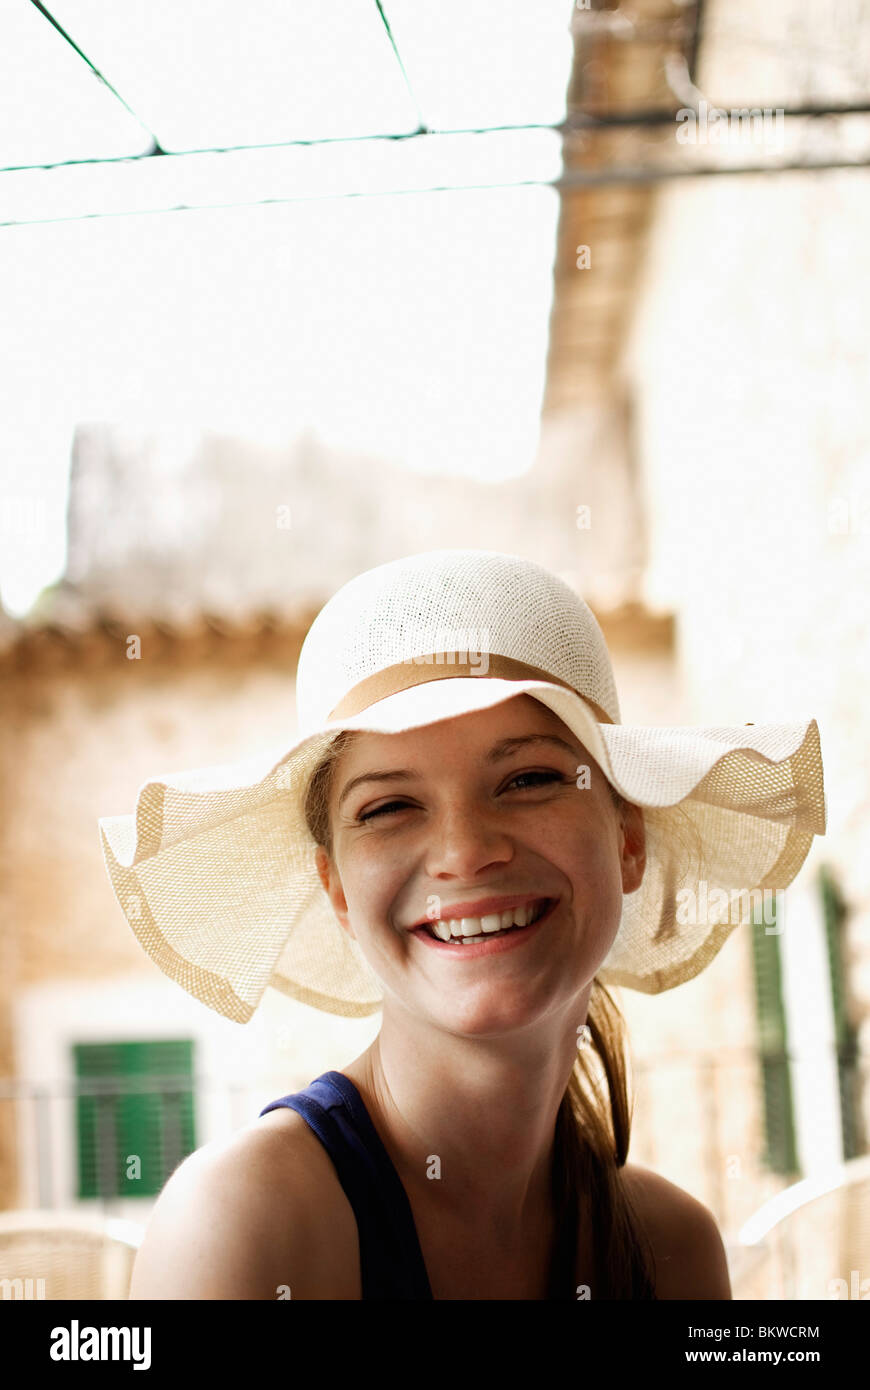 Smiling woman in hat - Stock Image